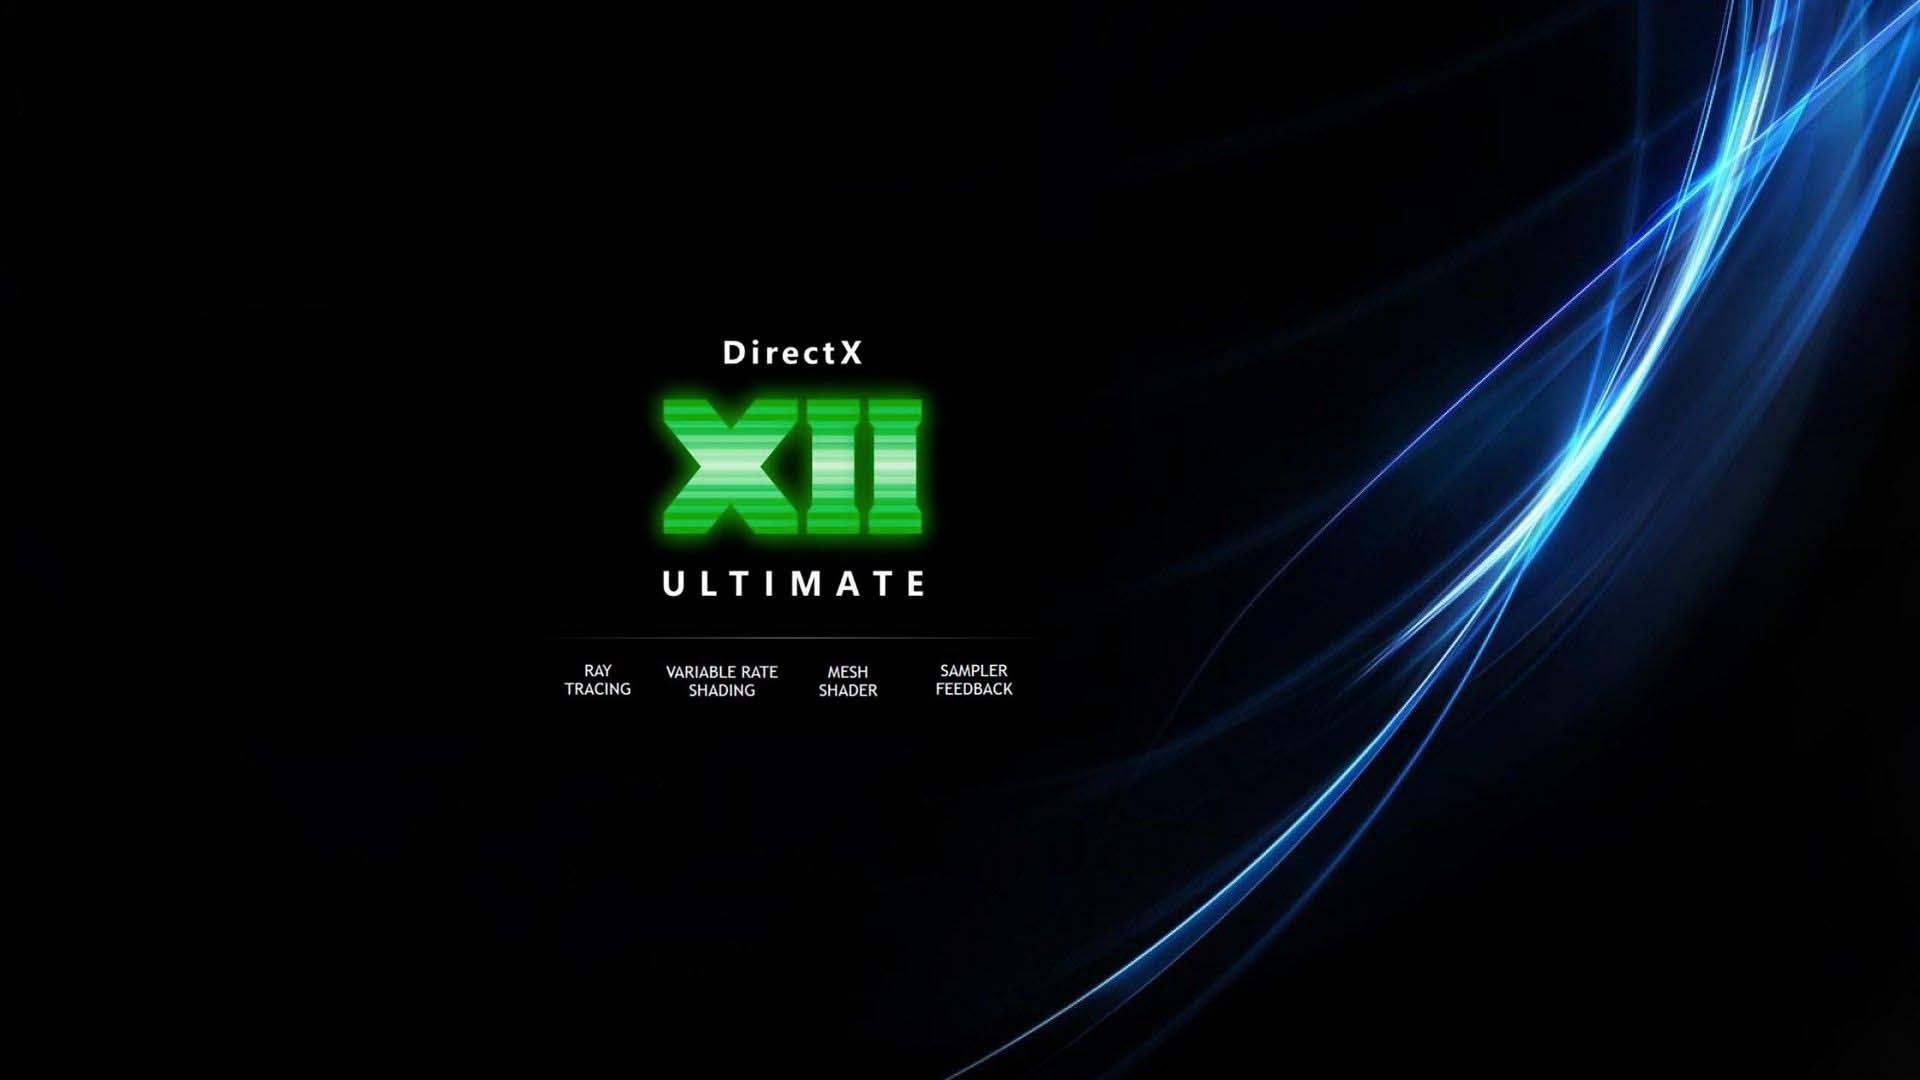 Microsoft and NVIDIA announce DirectX 12 Ultimate for Xbox Series X and PC